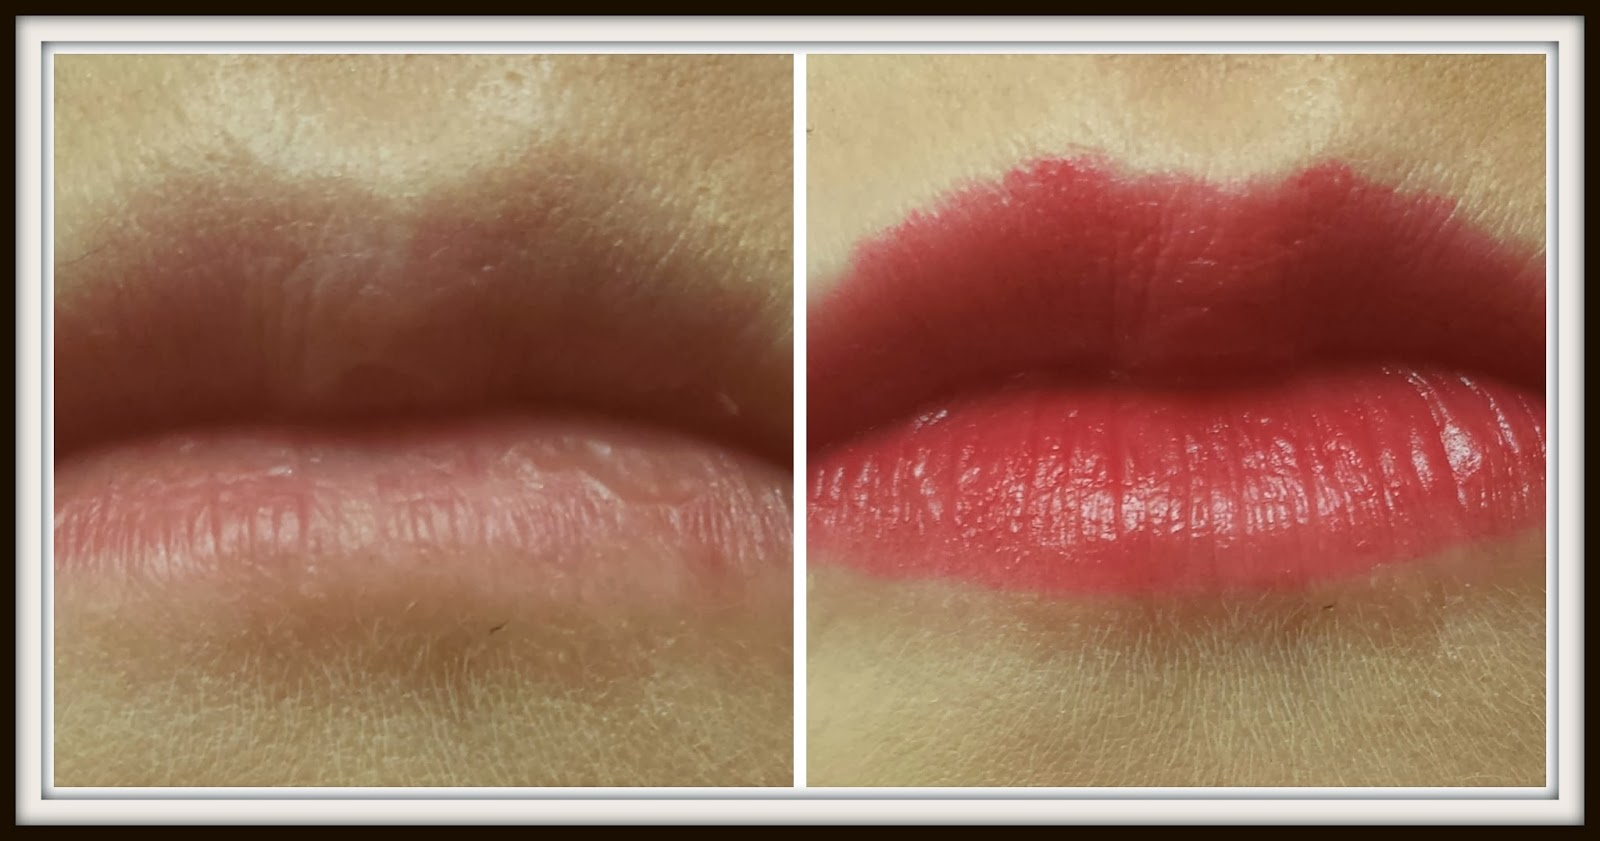 avon perfect kiss lipstick in smitten red review